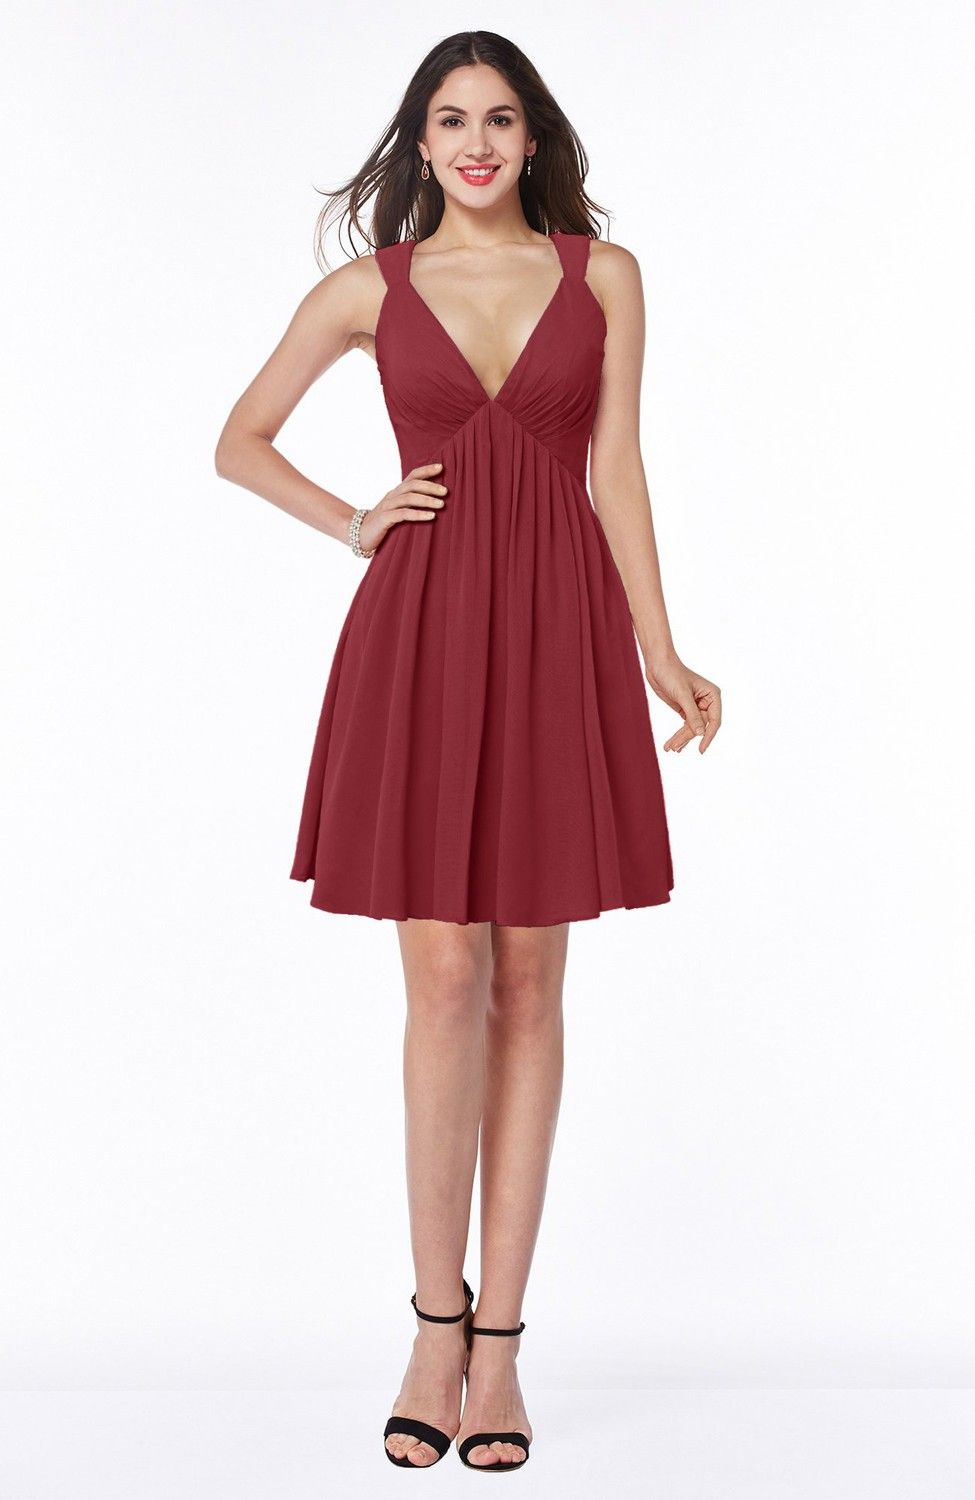 Dark red bridesmaid dress sexy aline sleeveless short pleated